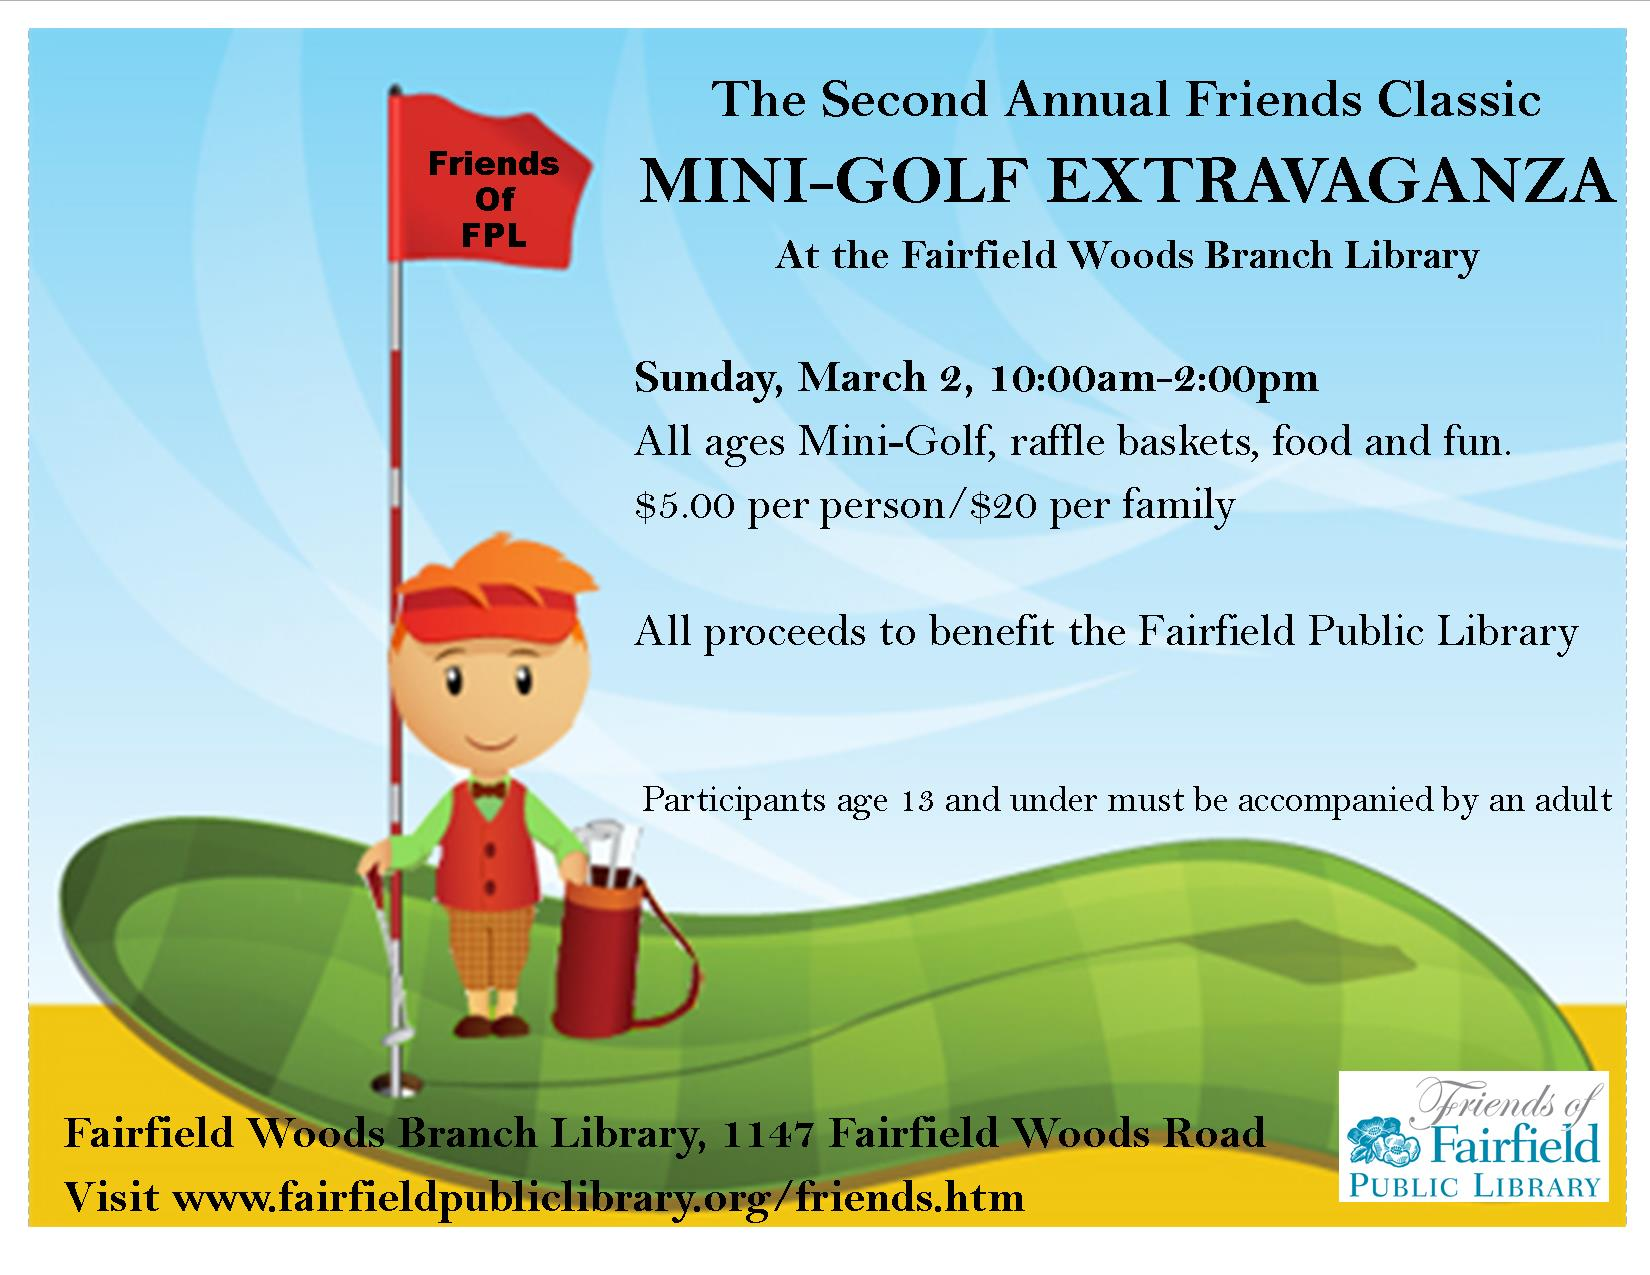 2nd annual mini golf at the fairfield woods branch library The fairfield